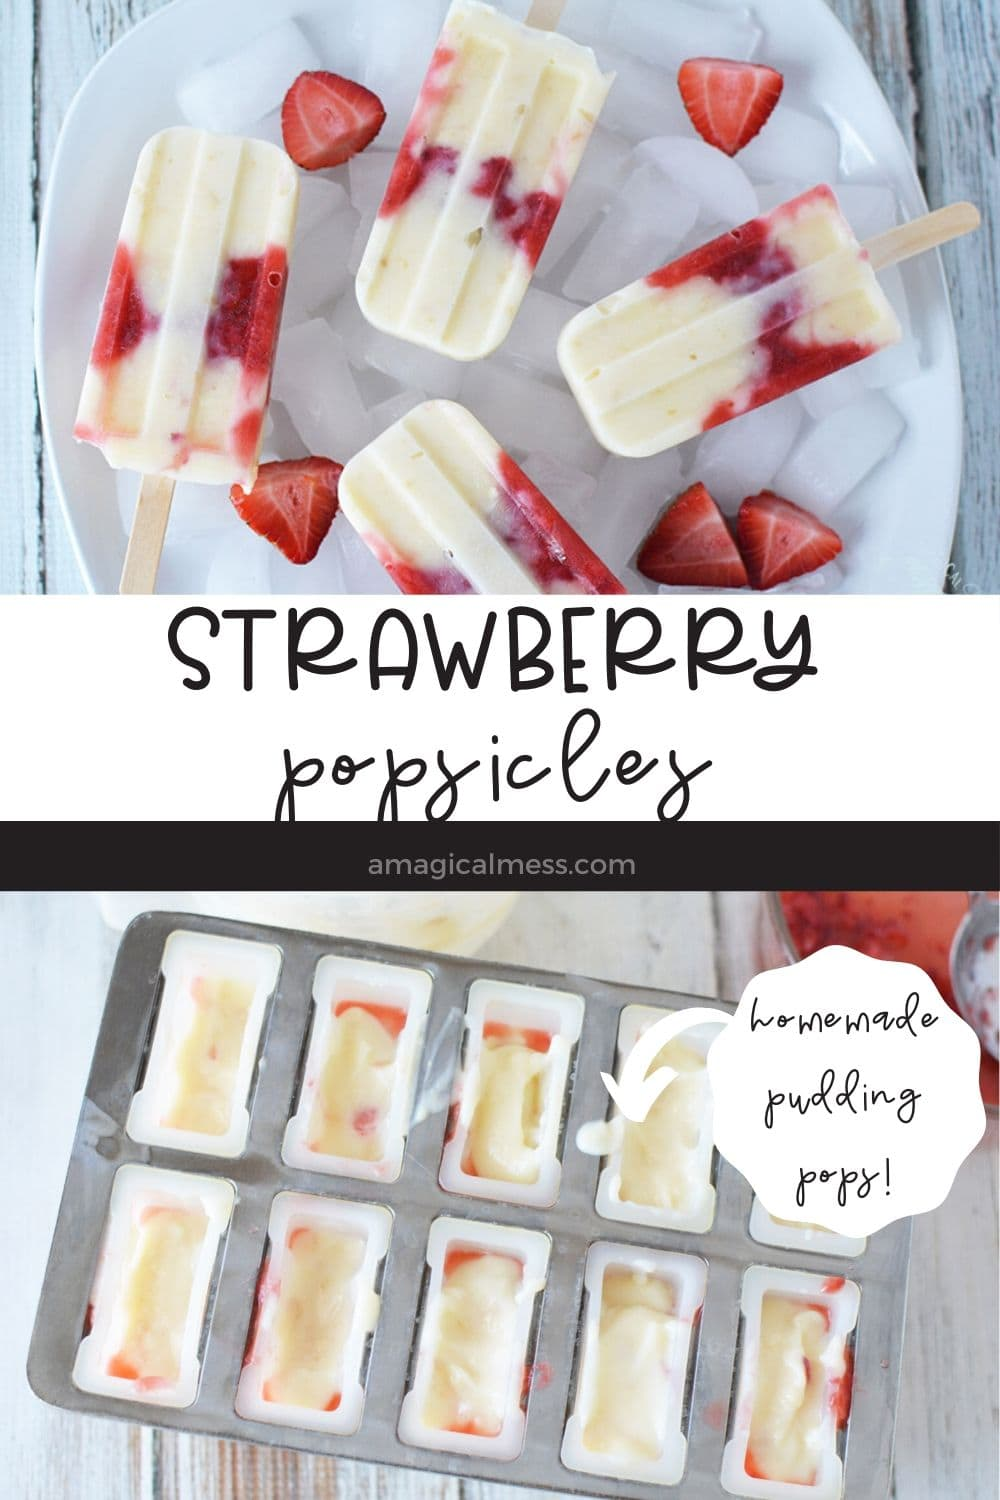 strawberry pops on ice and in mold